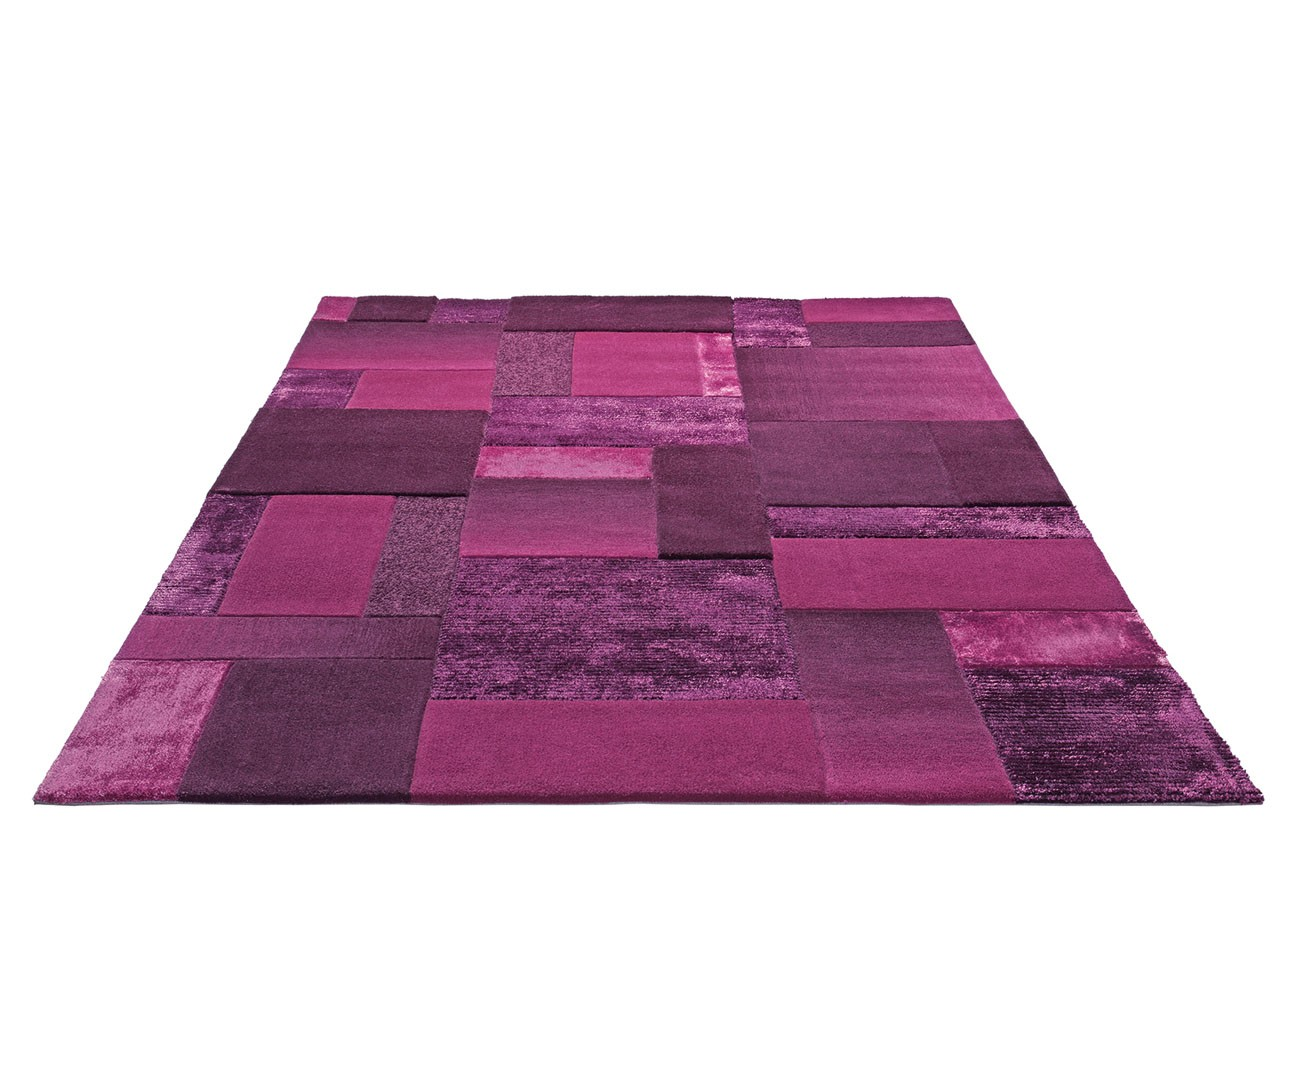 tapis moderne violet des id es novatrices sur la conception et le mobilier de maison. Black Bedroom Furniture Sets. Home Design Ideas